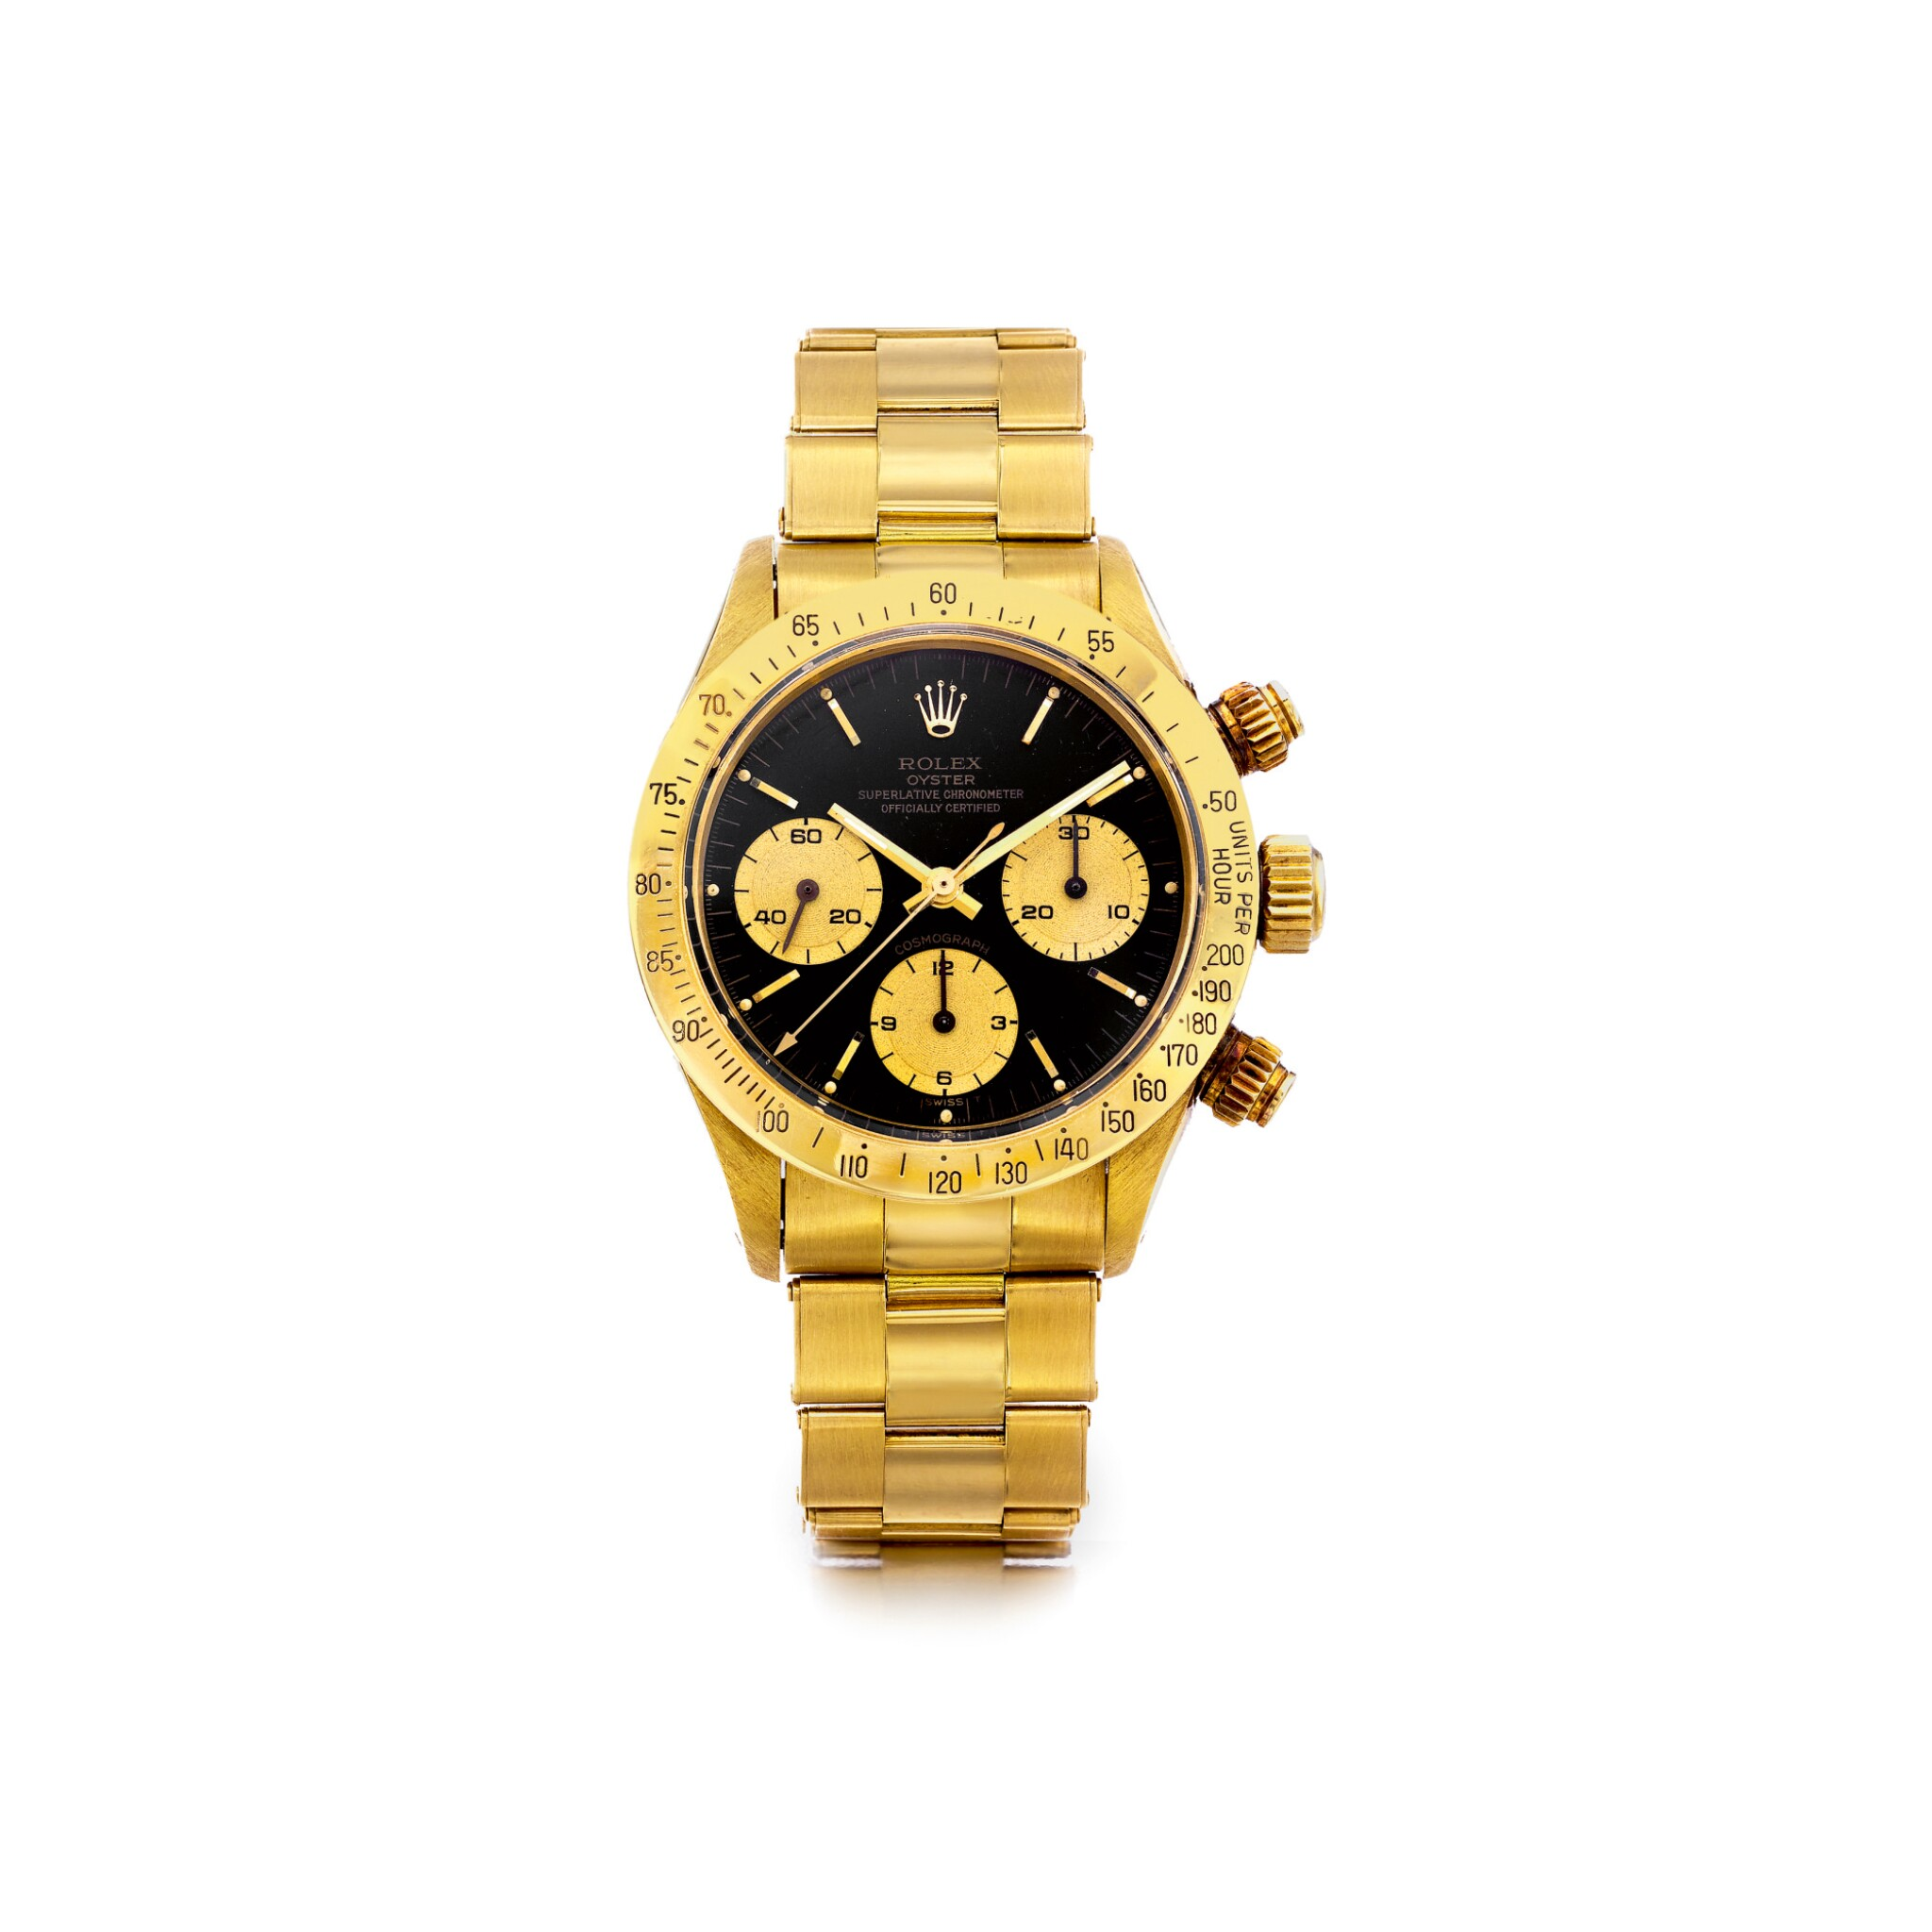 View full screen - View 1 of Lot 1079. ROLEX | REF 6265/6263 DAYTONA, A YELLOW GOLD CHRONOGRAPH WRISTWATCH WITH REGISTERS AND BRACELET, CIRCA 1986 | 勞力士 |6265/6263型號「DAYTONA」黃金計時鍊帶腕錶,年份約1986.